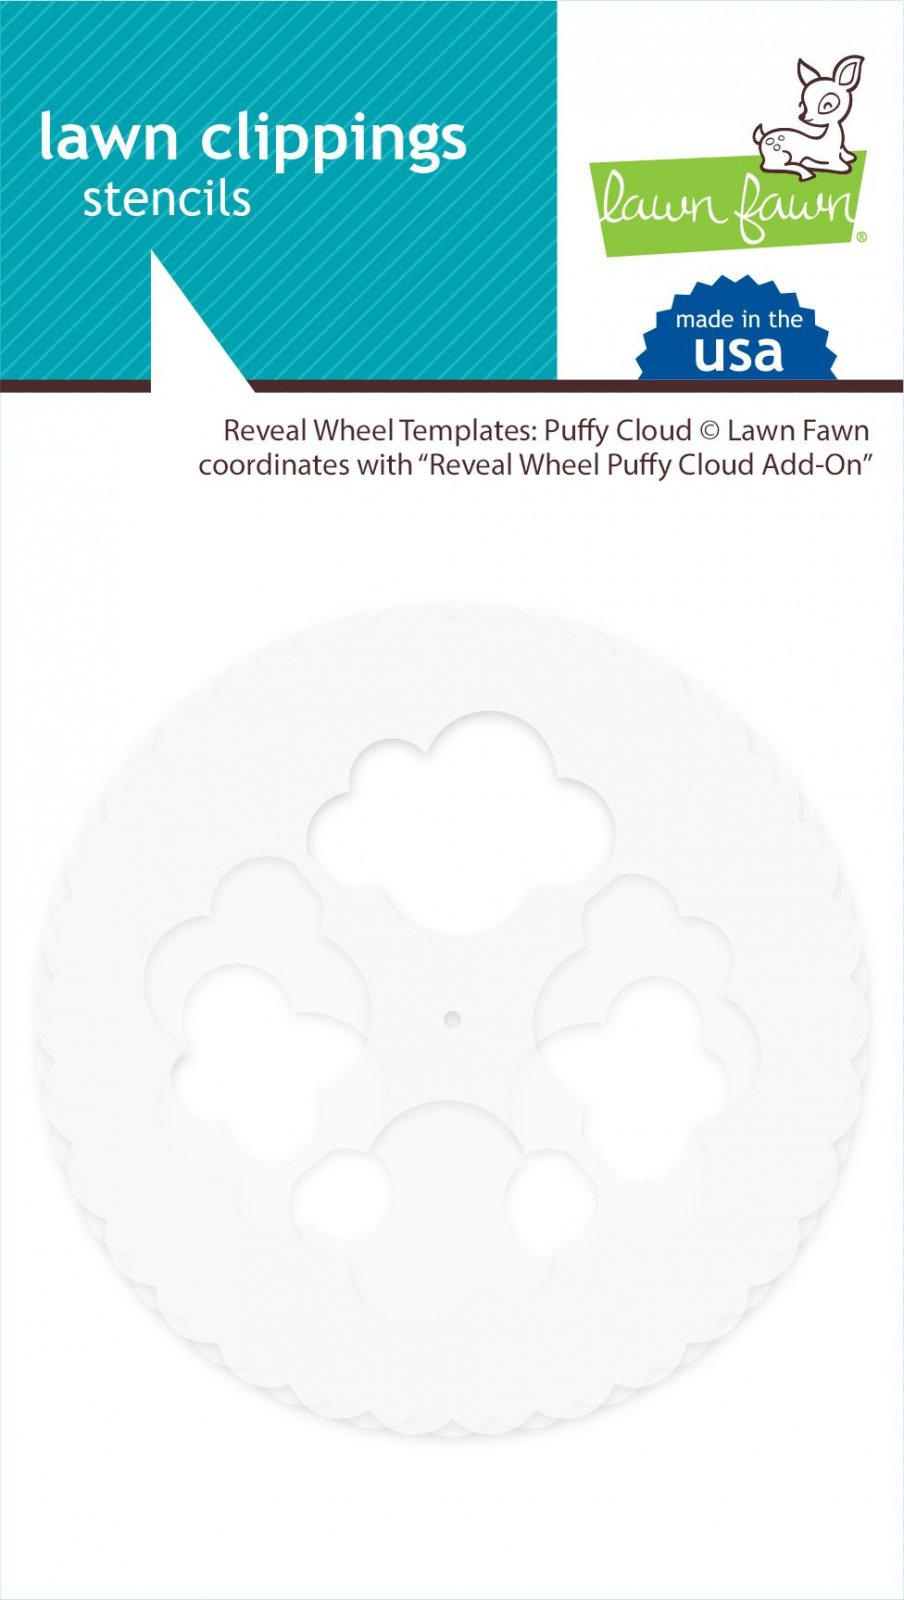 Lawn Fawn - Puffy Cloud Reveal Wheel Template